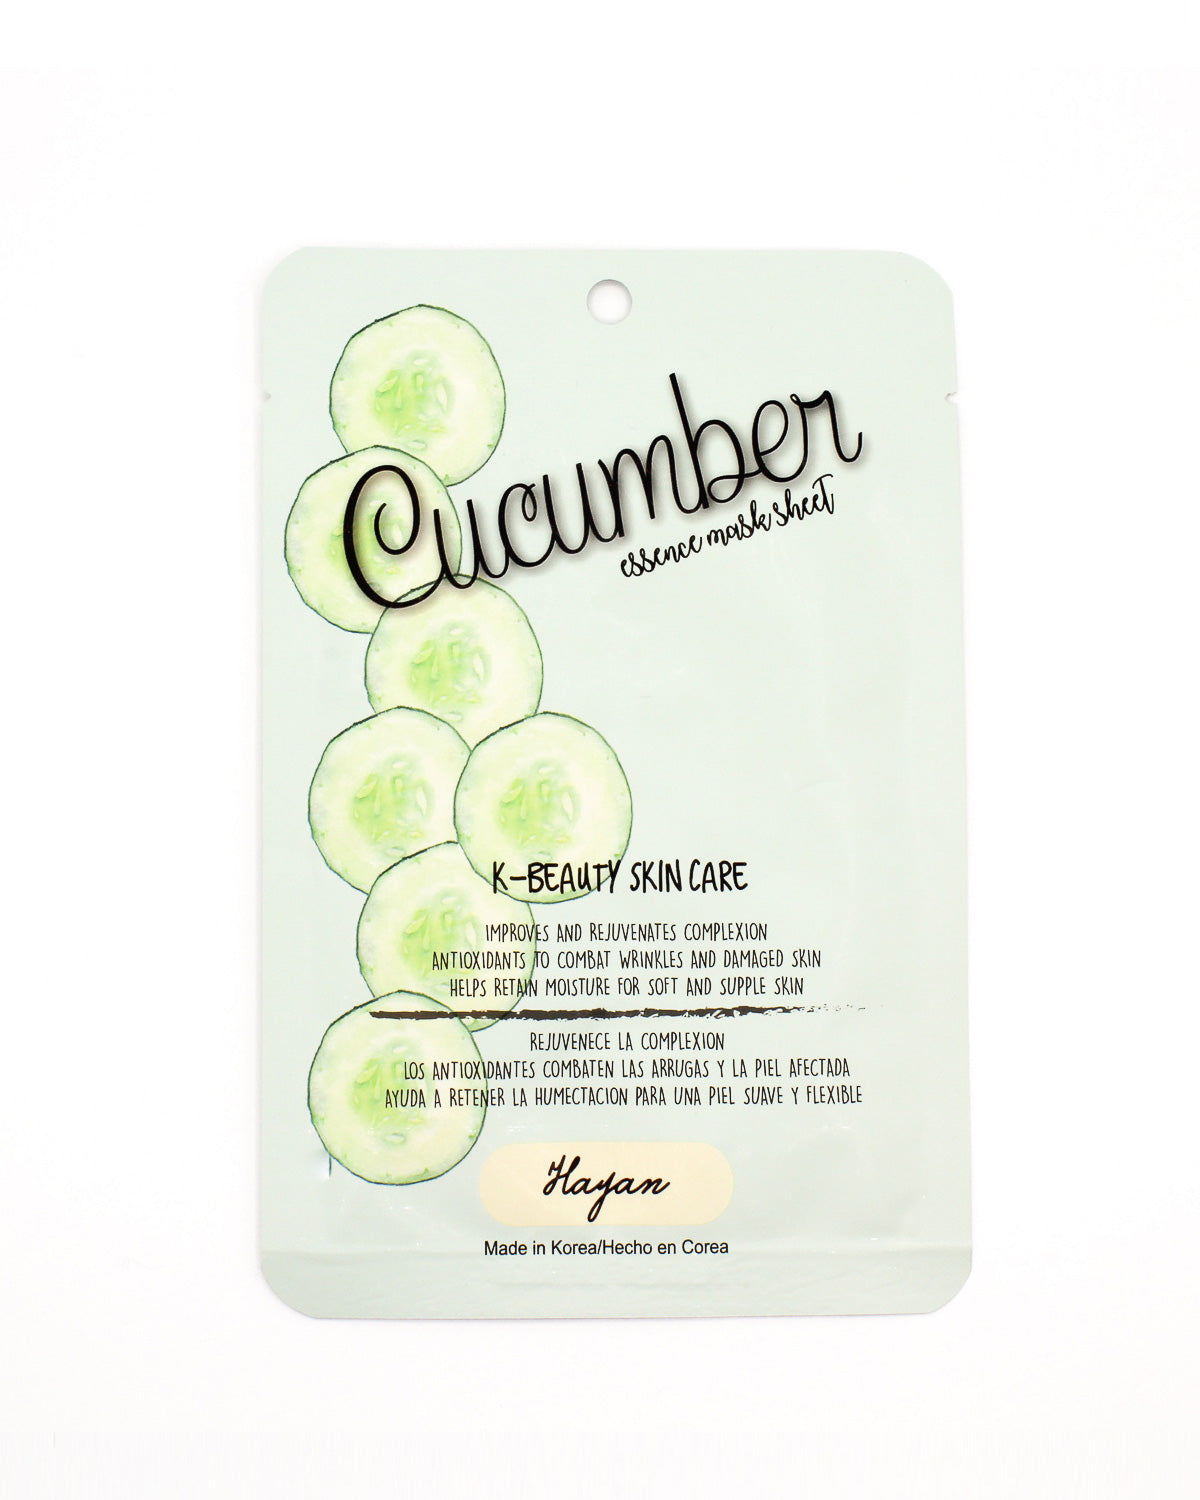 Fashion Q Shop Q K-Beauty Skincare Line: Cucumber Essence Mask Sheet K-BEAUTY